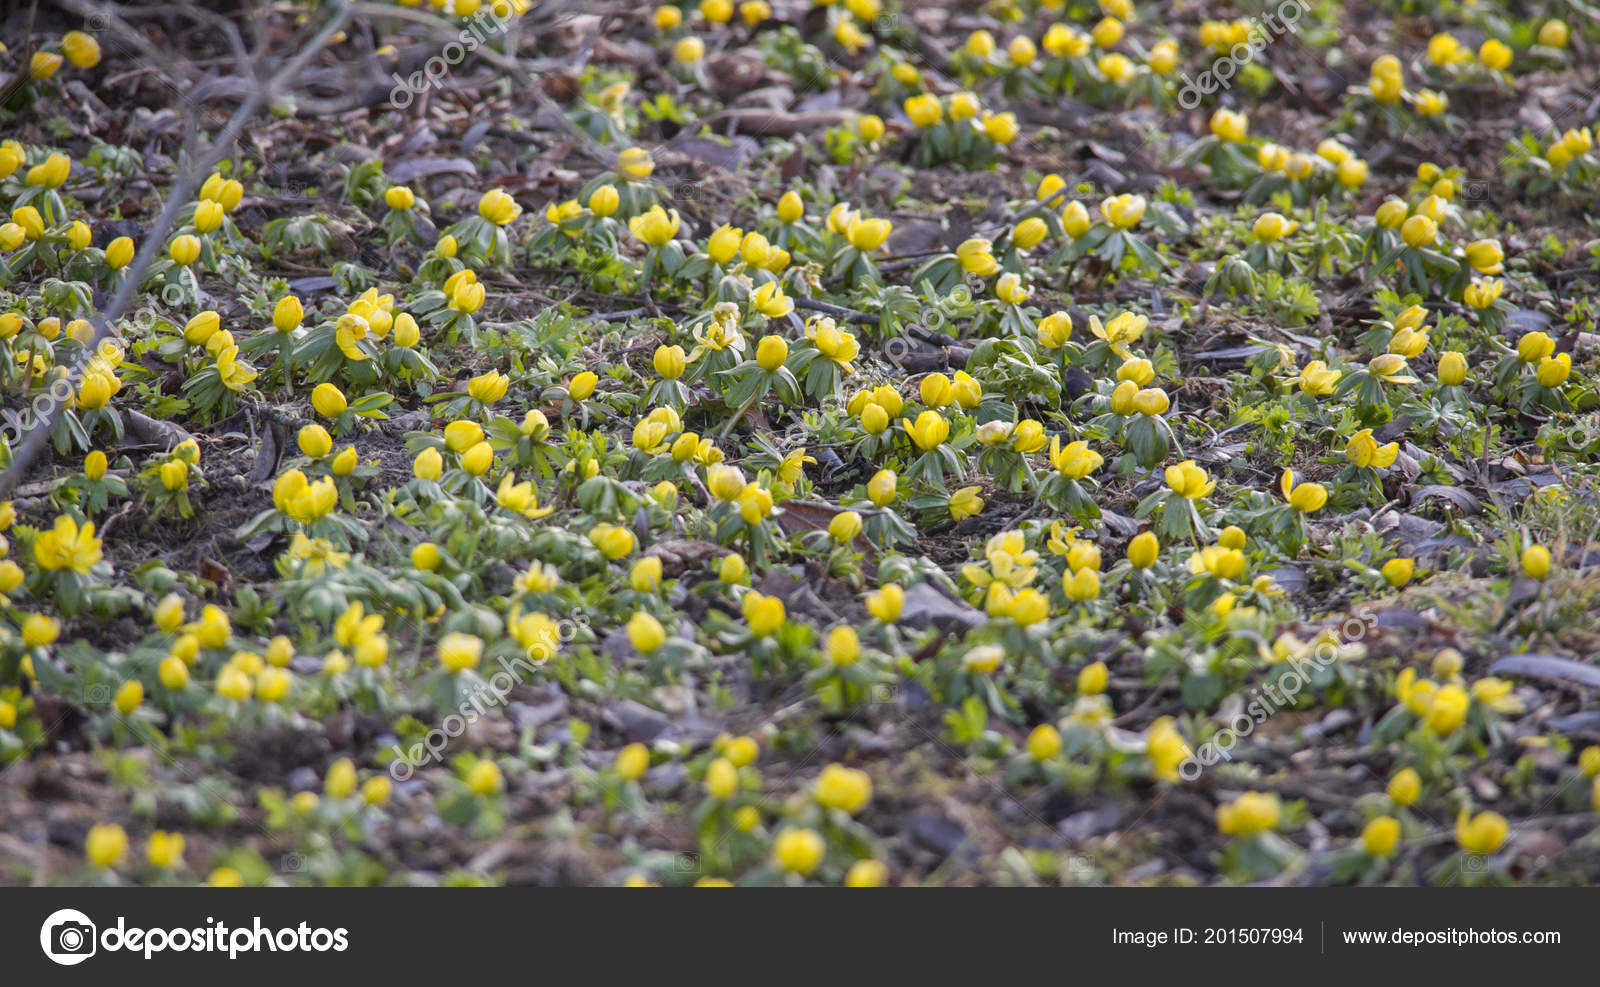 Winter Aconite Blooming Yellow Flowers Forest Floor Dry Beech Leaves